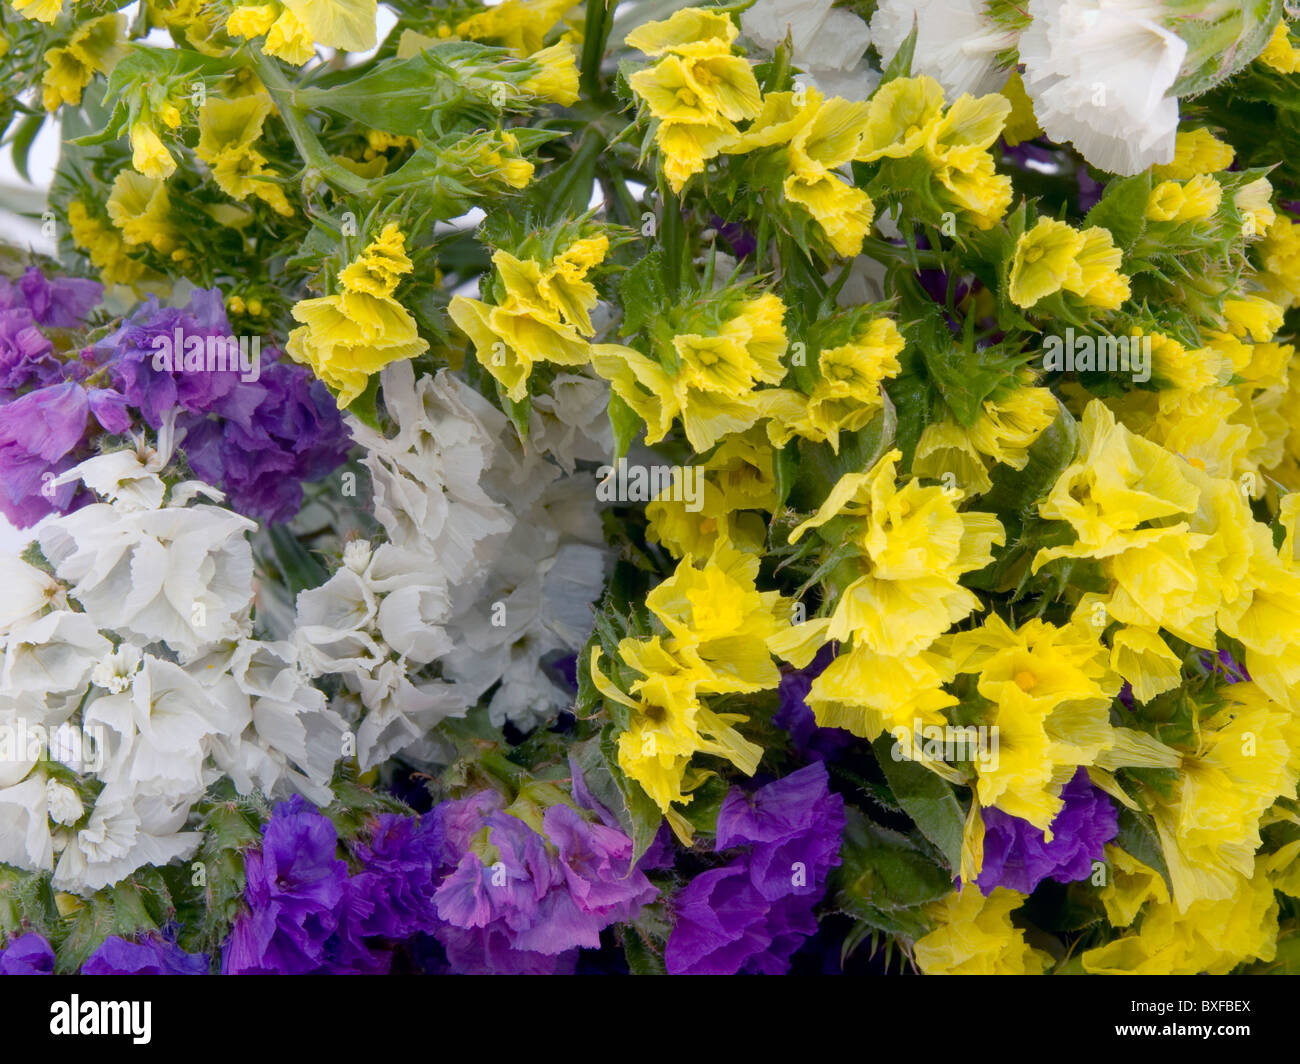 Closeup picture of statice flowers - flowers background - Stock Image